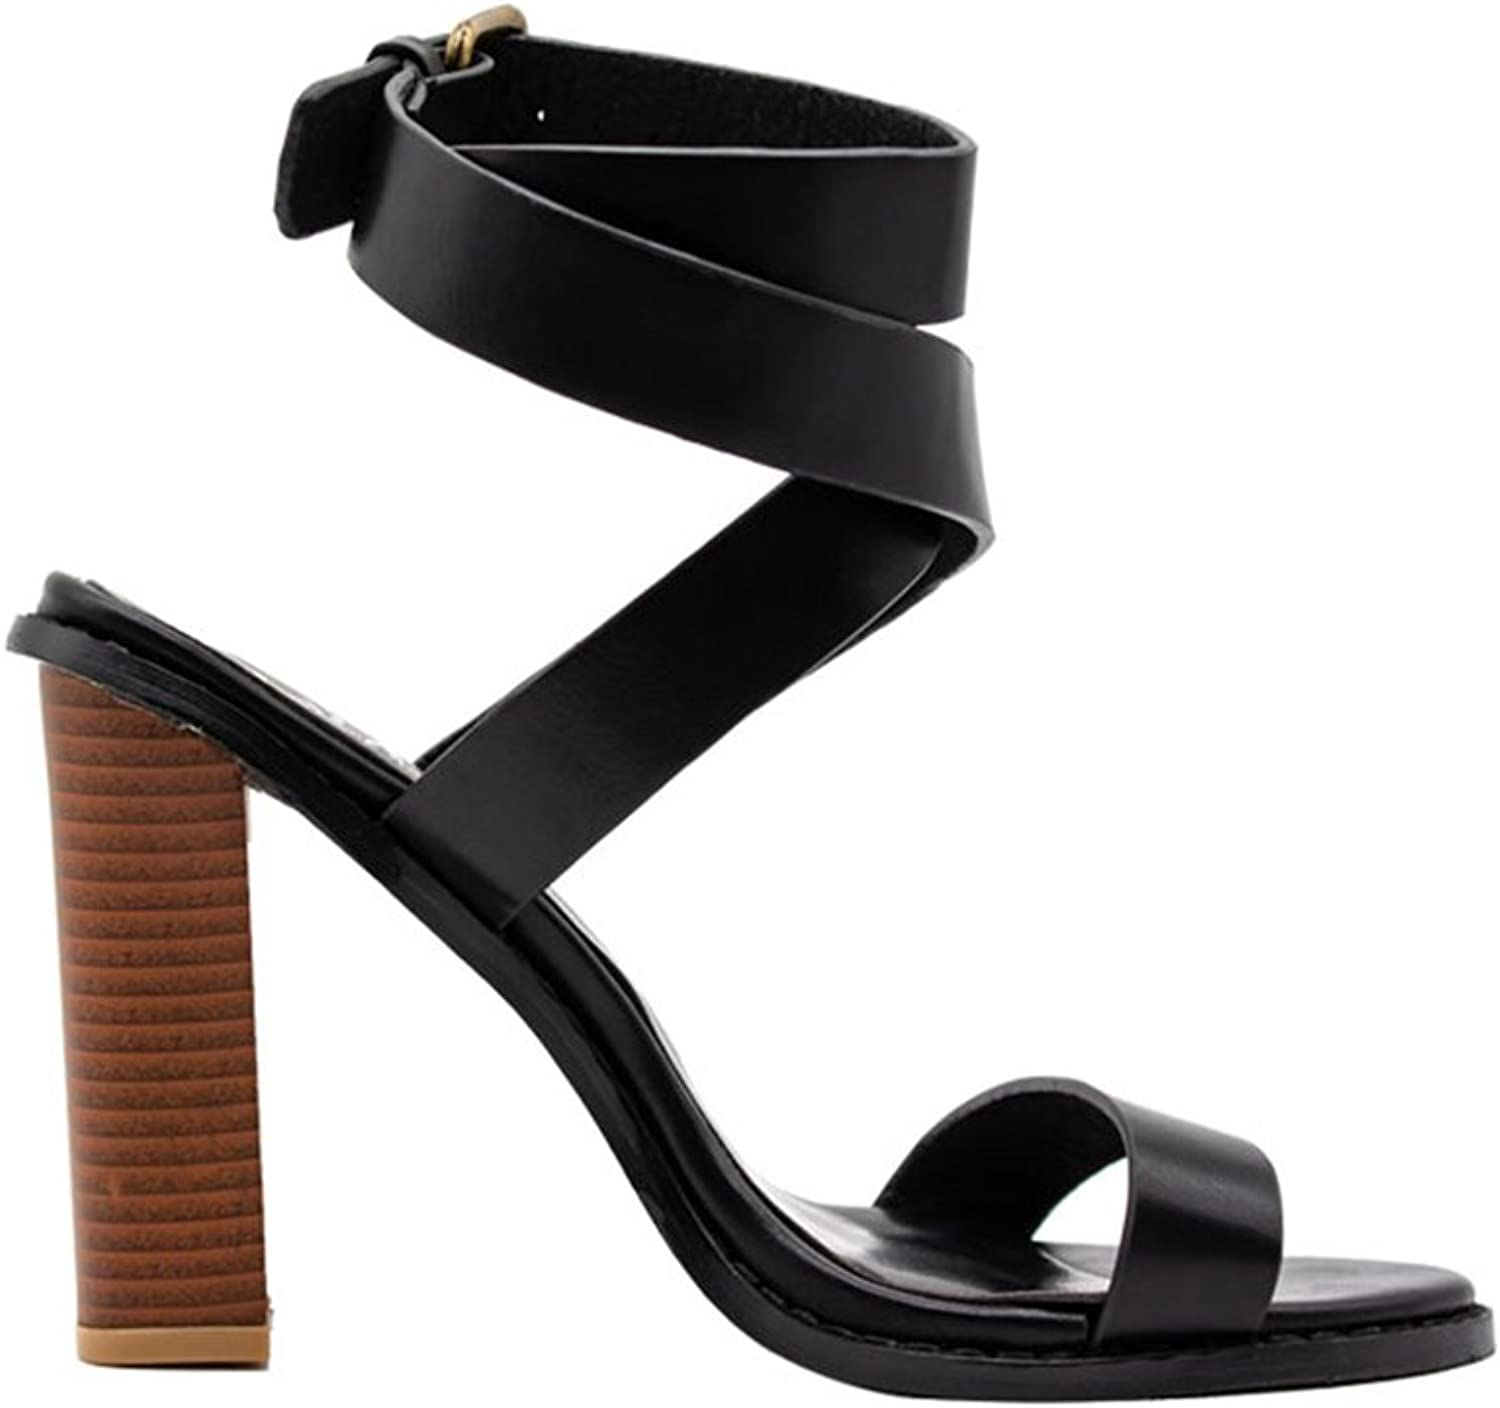 Genepeg Womens Sandals Buckle Strap Square Heels Casual Gladiator Open Toe High Heels